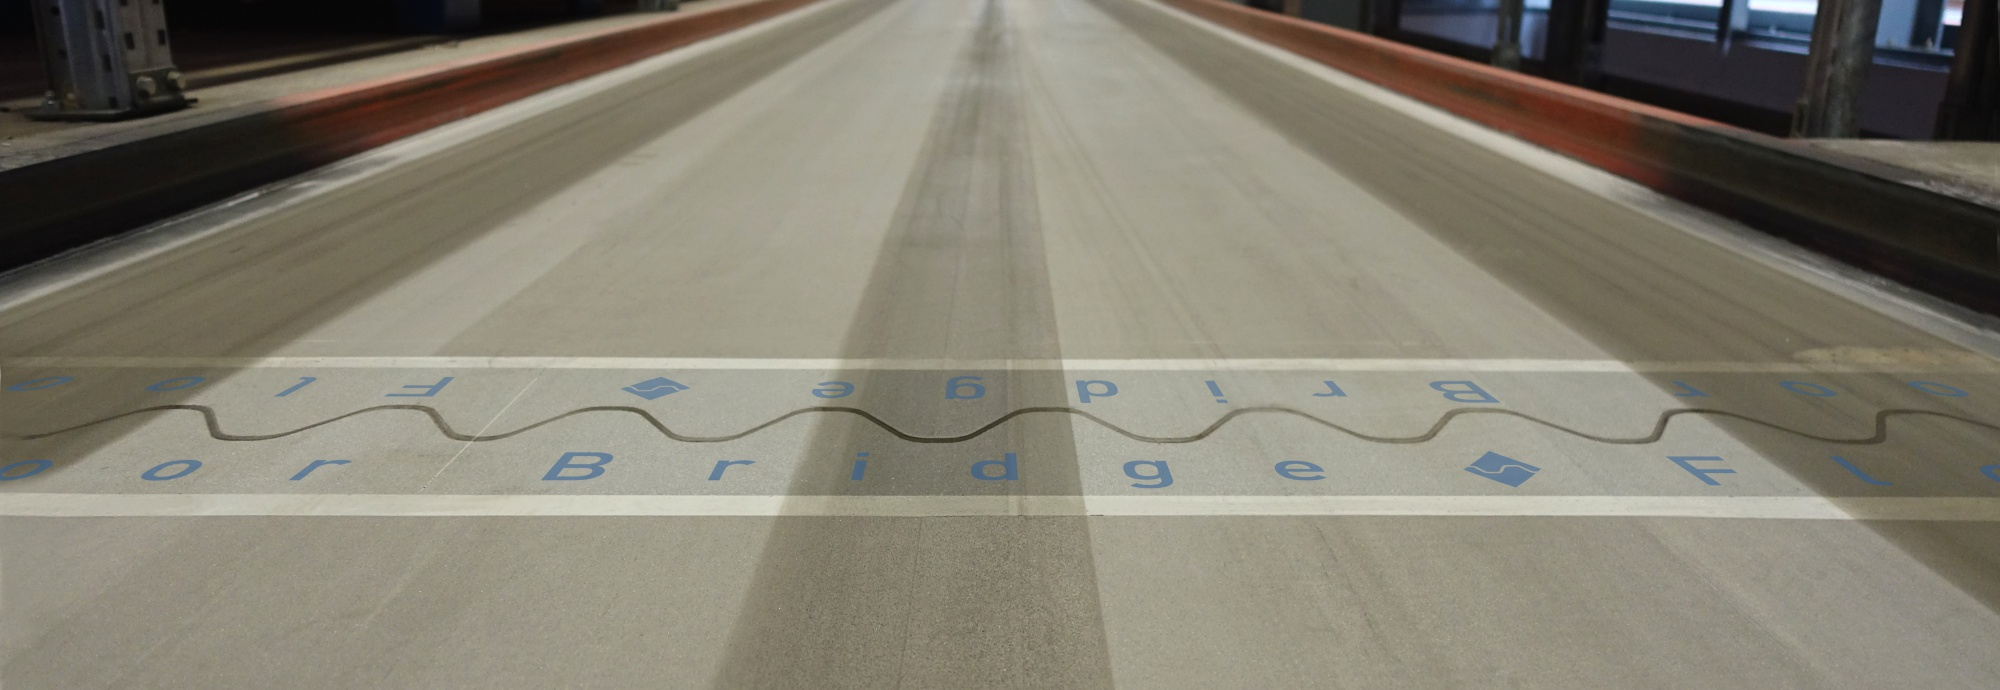 FloorBridge